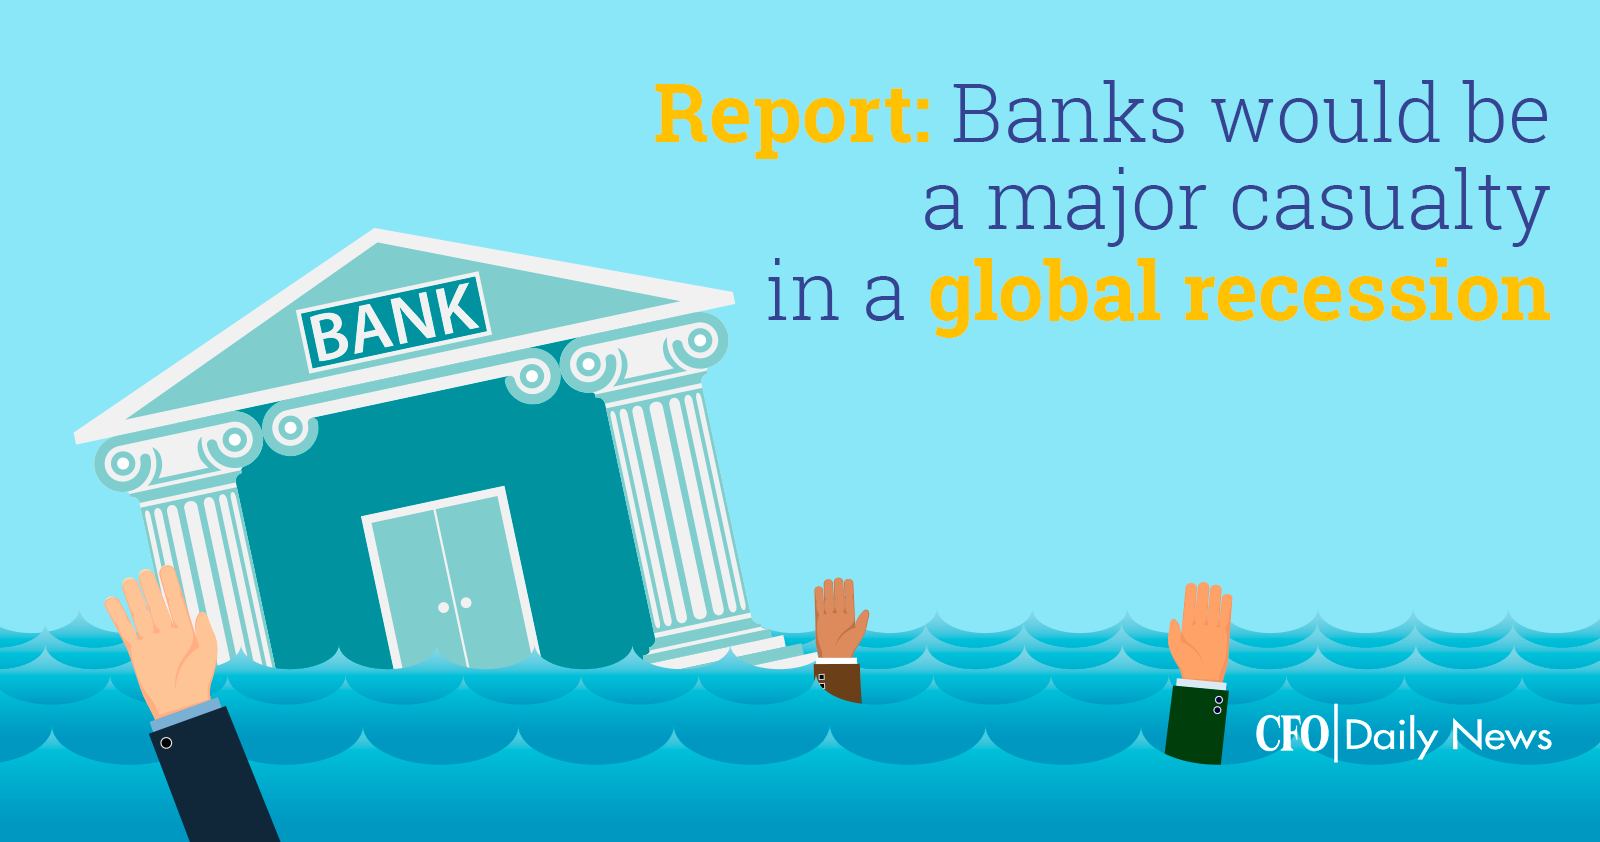 report banks would be a major casualty in a global recession